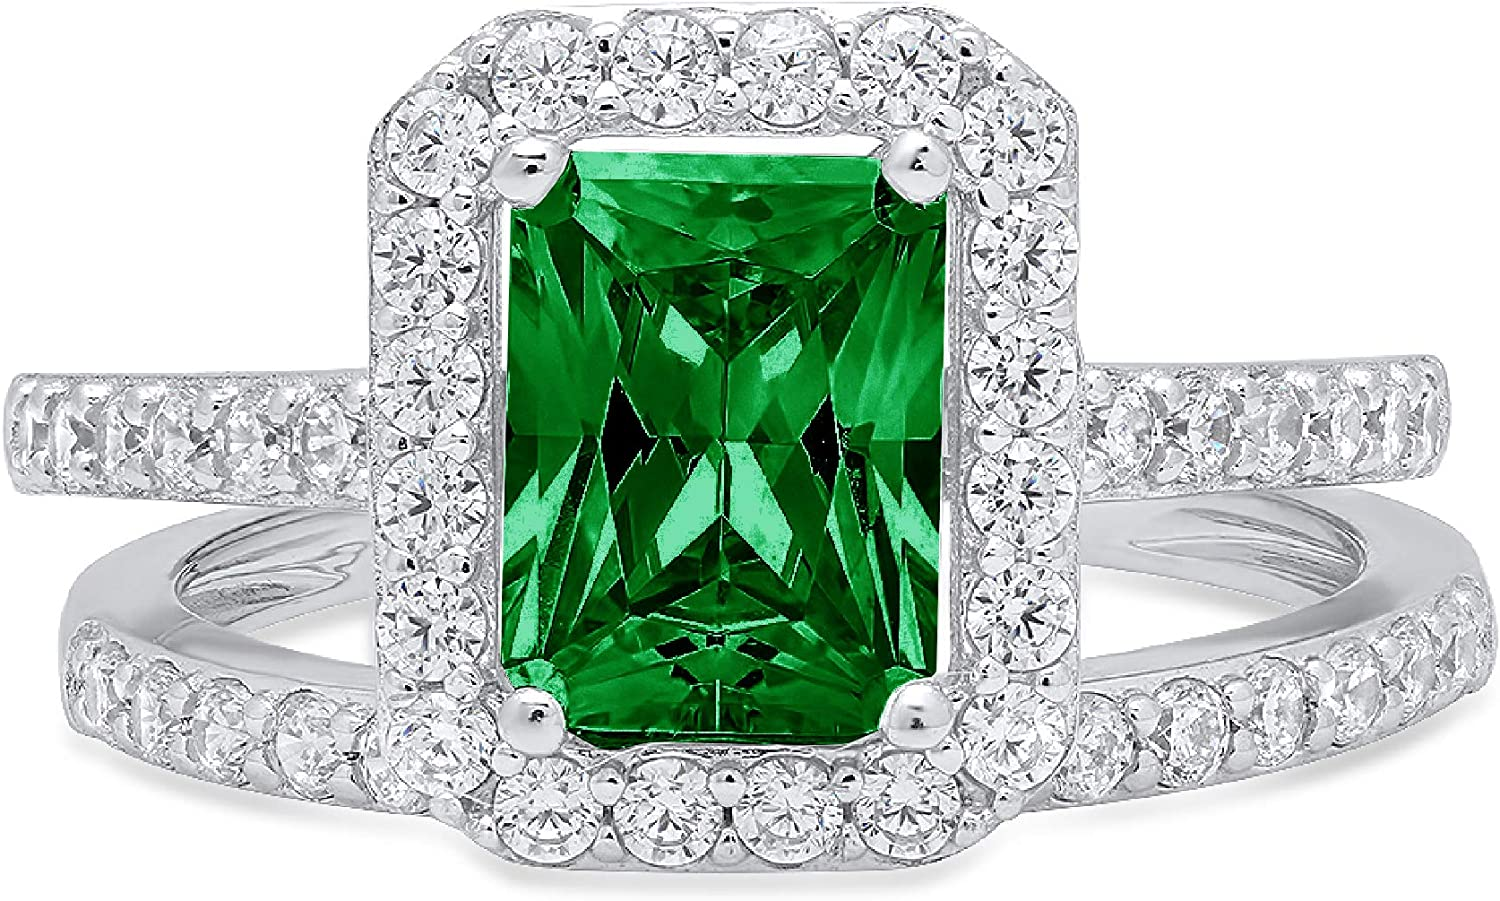 2.14ct Emerald Round Cut Pave Halo Solitaire with Accent VVS1 Ideal Flawless Simulated CZ Green Emerald Engagement Promise Designer Anniversary Wedding Bridal ring band set 14k White Gold